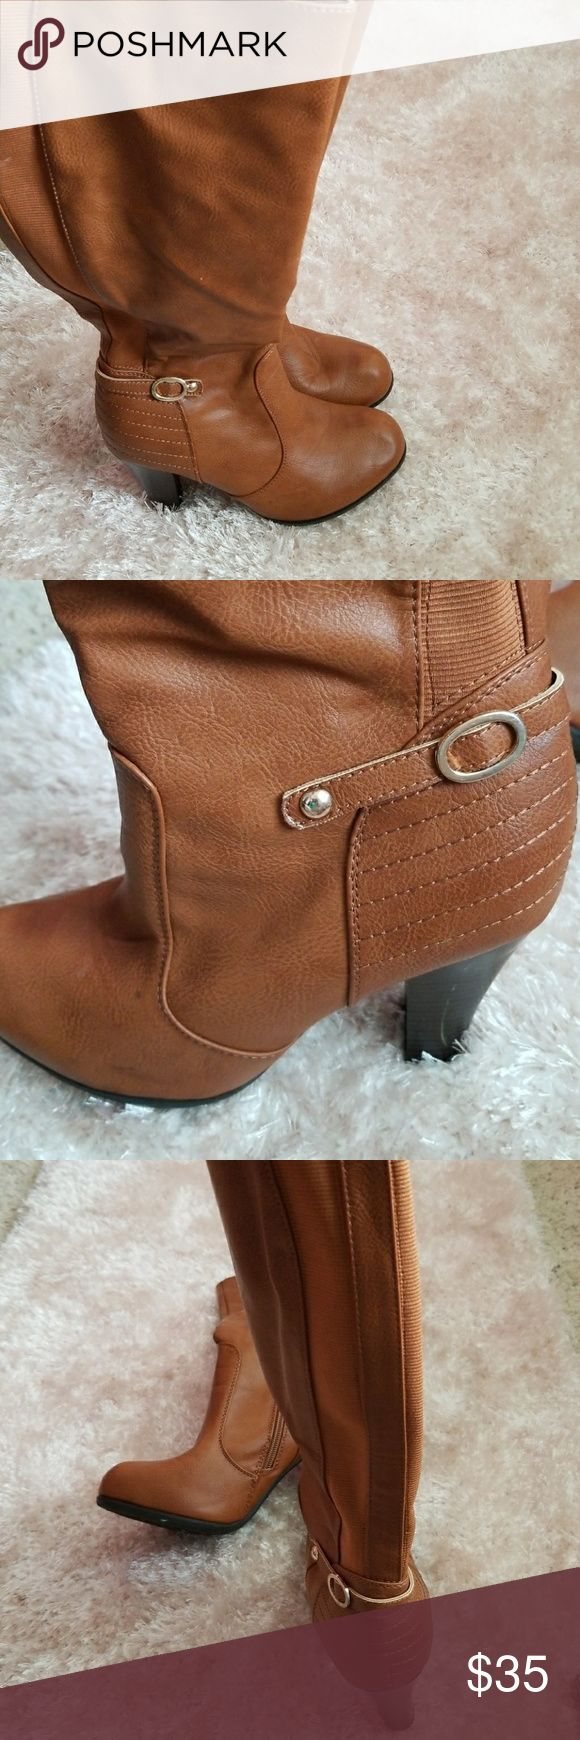 Women's long Light Brown  Boots Long Brown Boots size 8 Sinthetic upper Balance Man Made De Blossom Collection De Bloosom Collection Dove 5 Shoes Heeled Boots